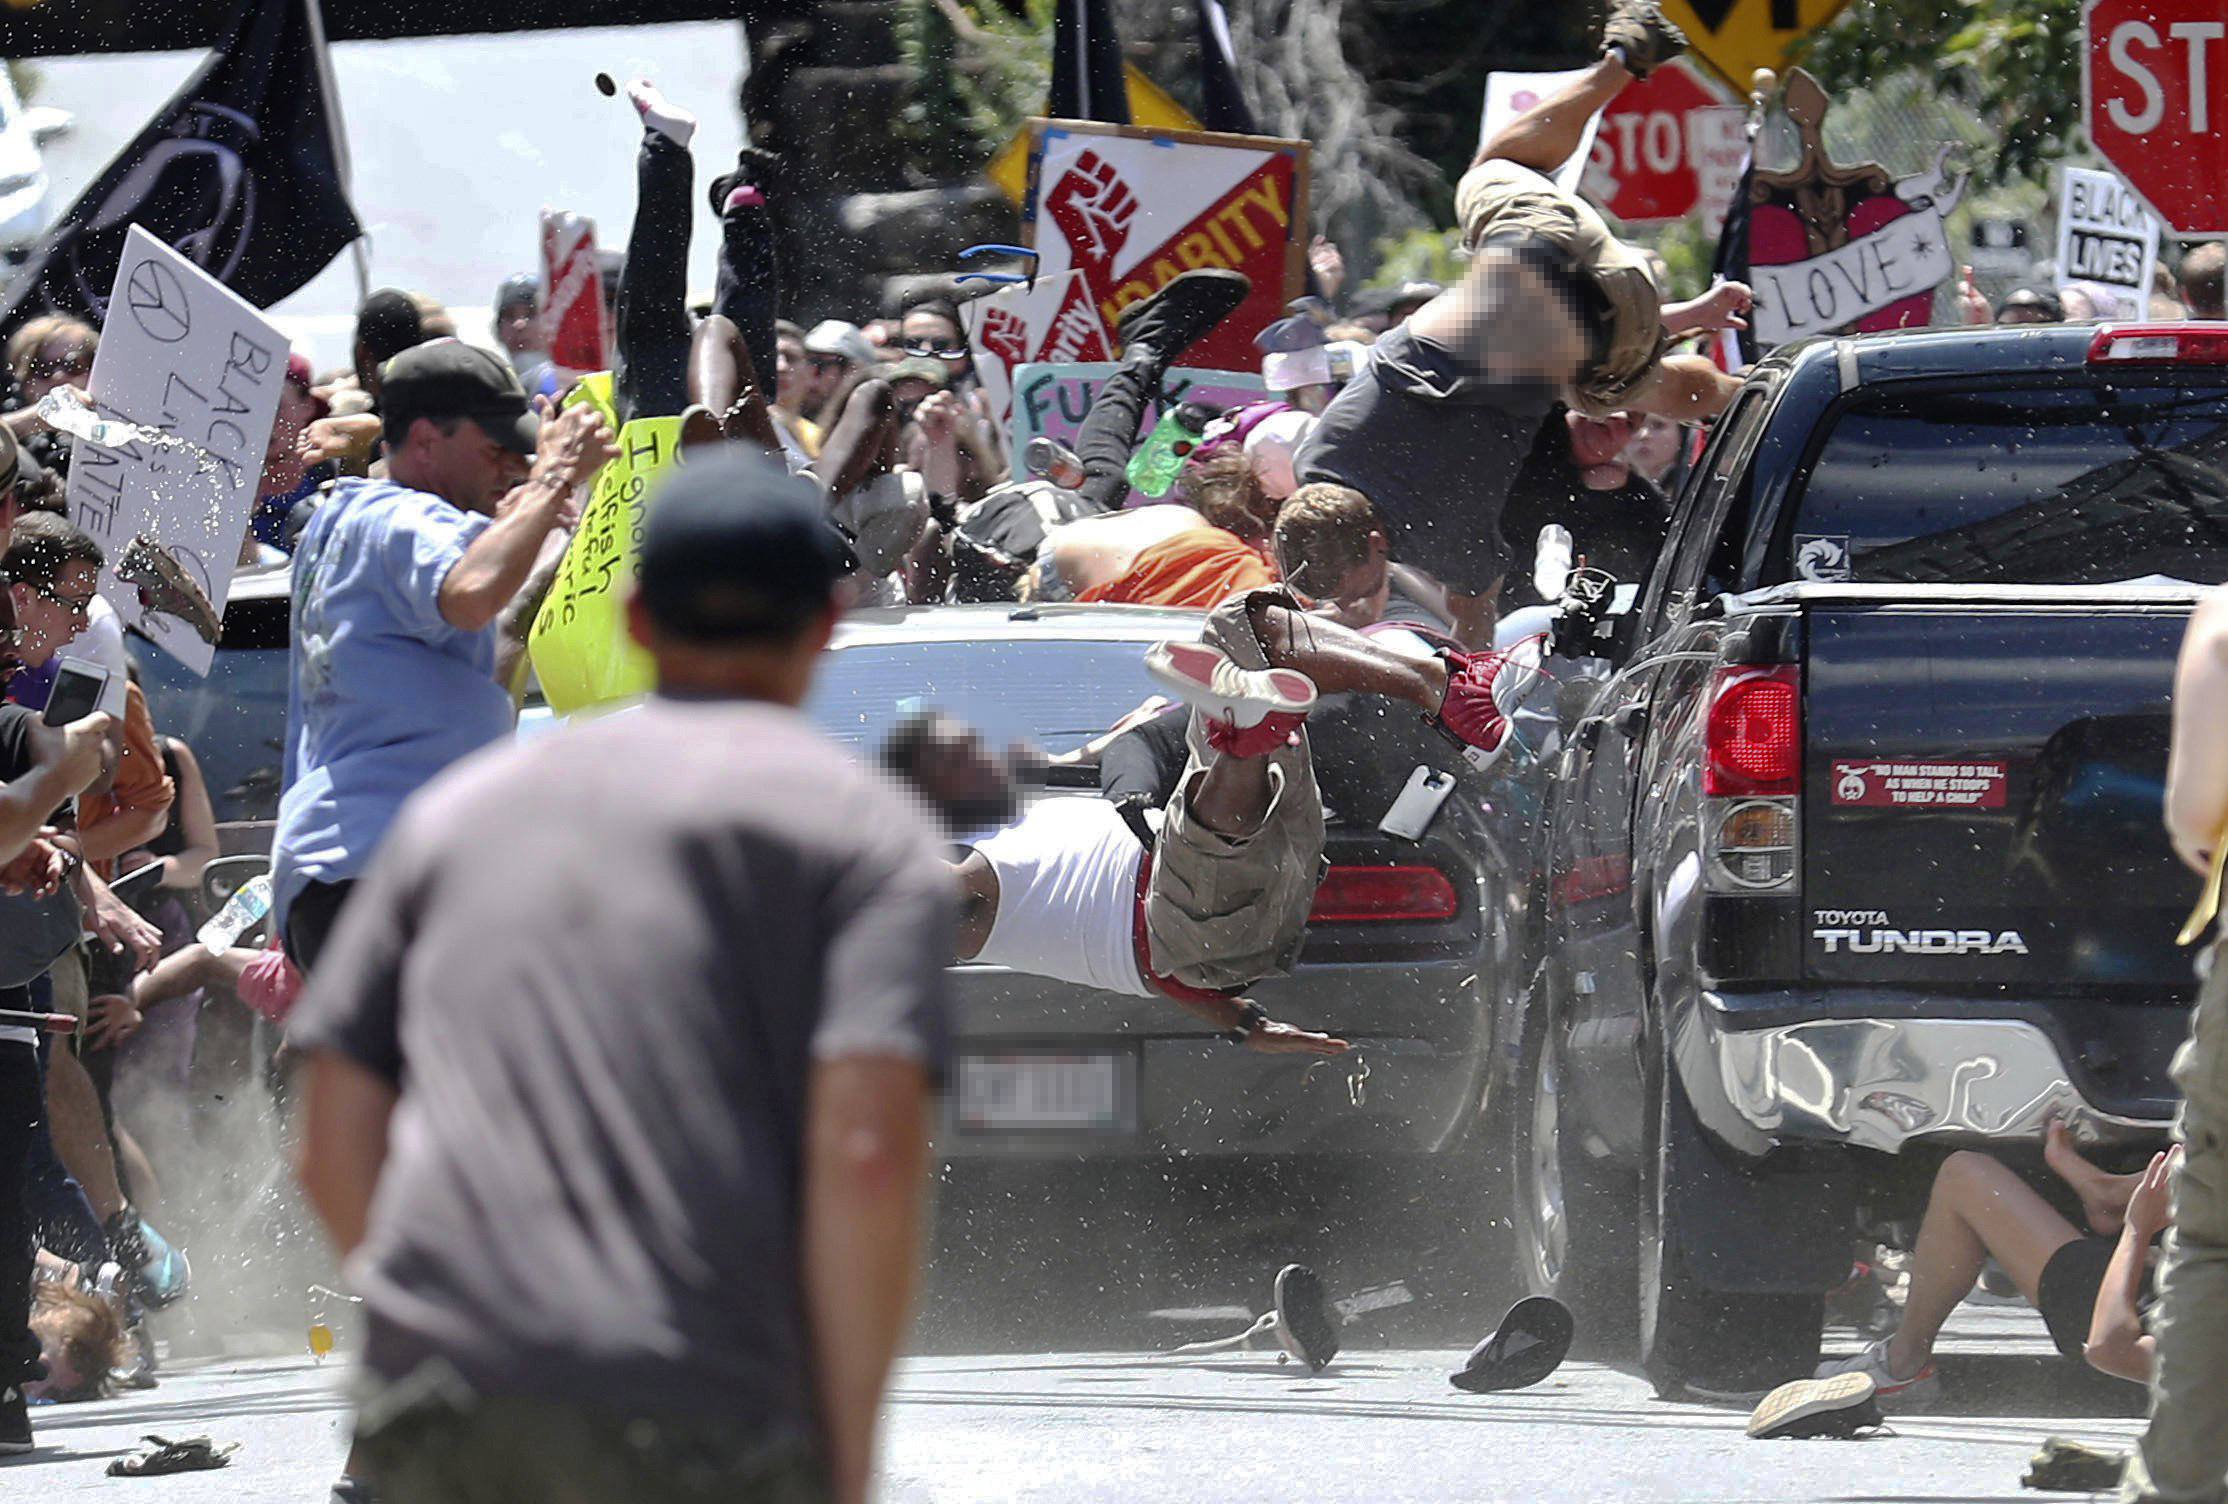 One-Killed,-19-Hurt-After-Car-Strikes-Crowd-in-Charlottesville